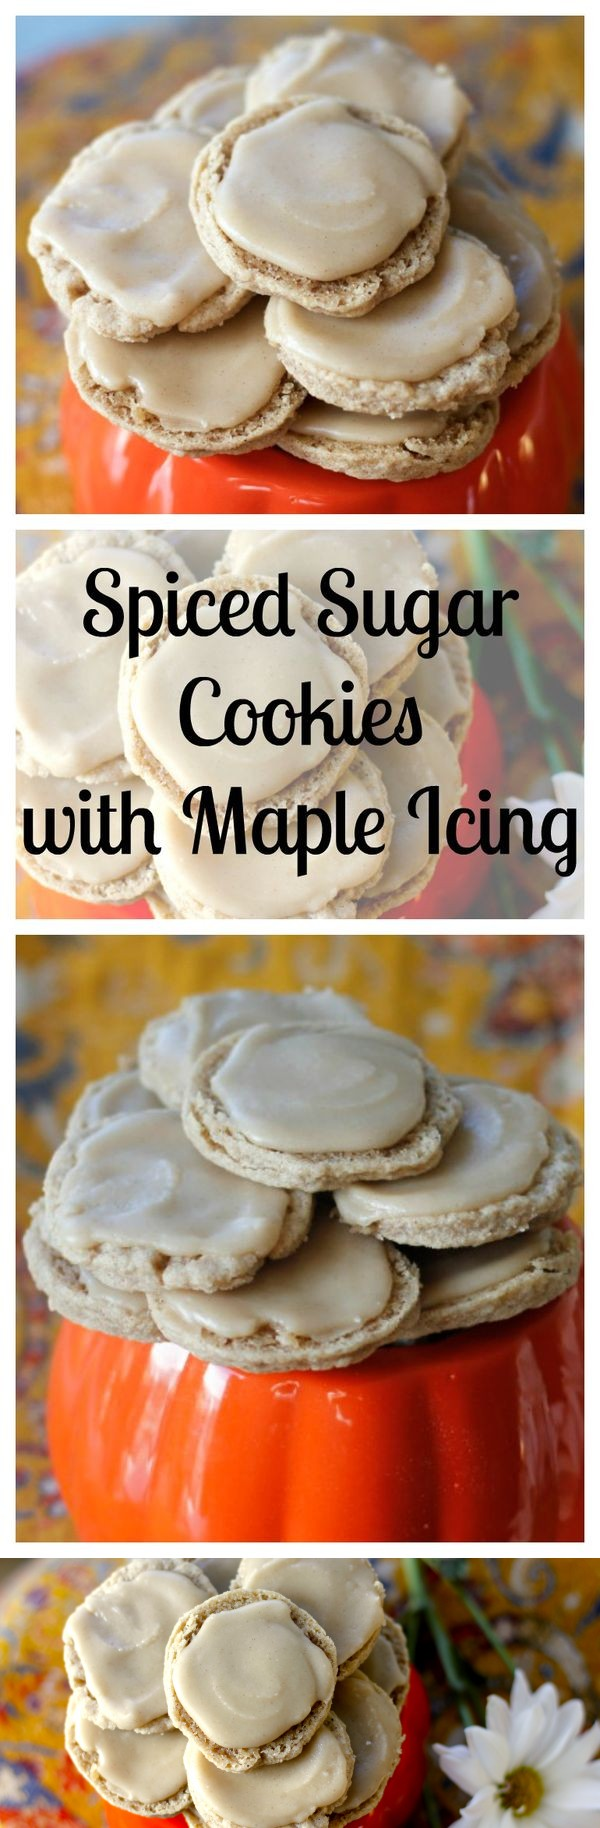 Spiced Sugar Cookies with Maple Icing